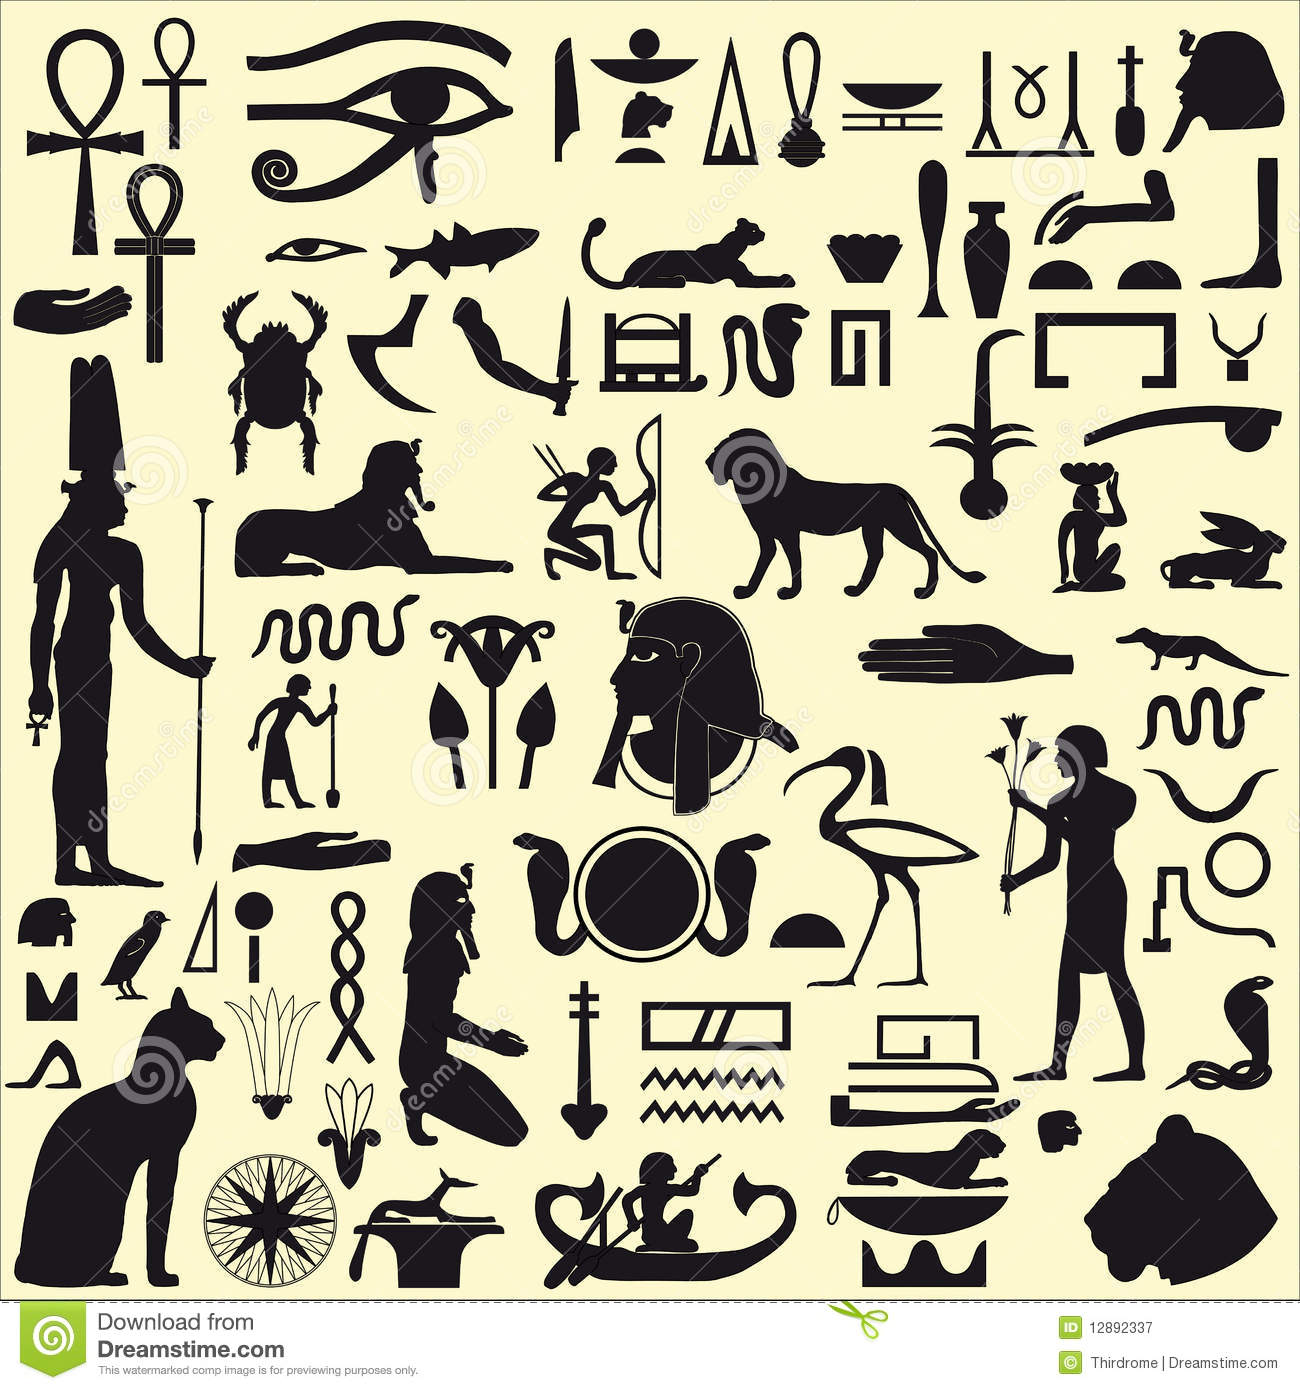 Copy of copy of ancient egypt lessons tes teach egyptian symbols and signs royalty free stock photography image biocorpaavc